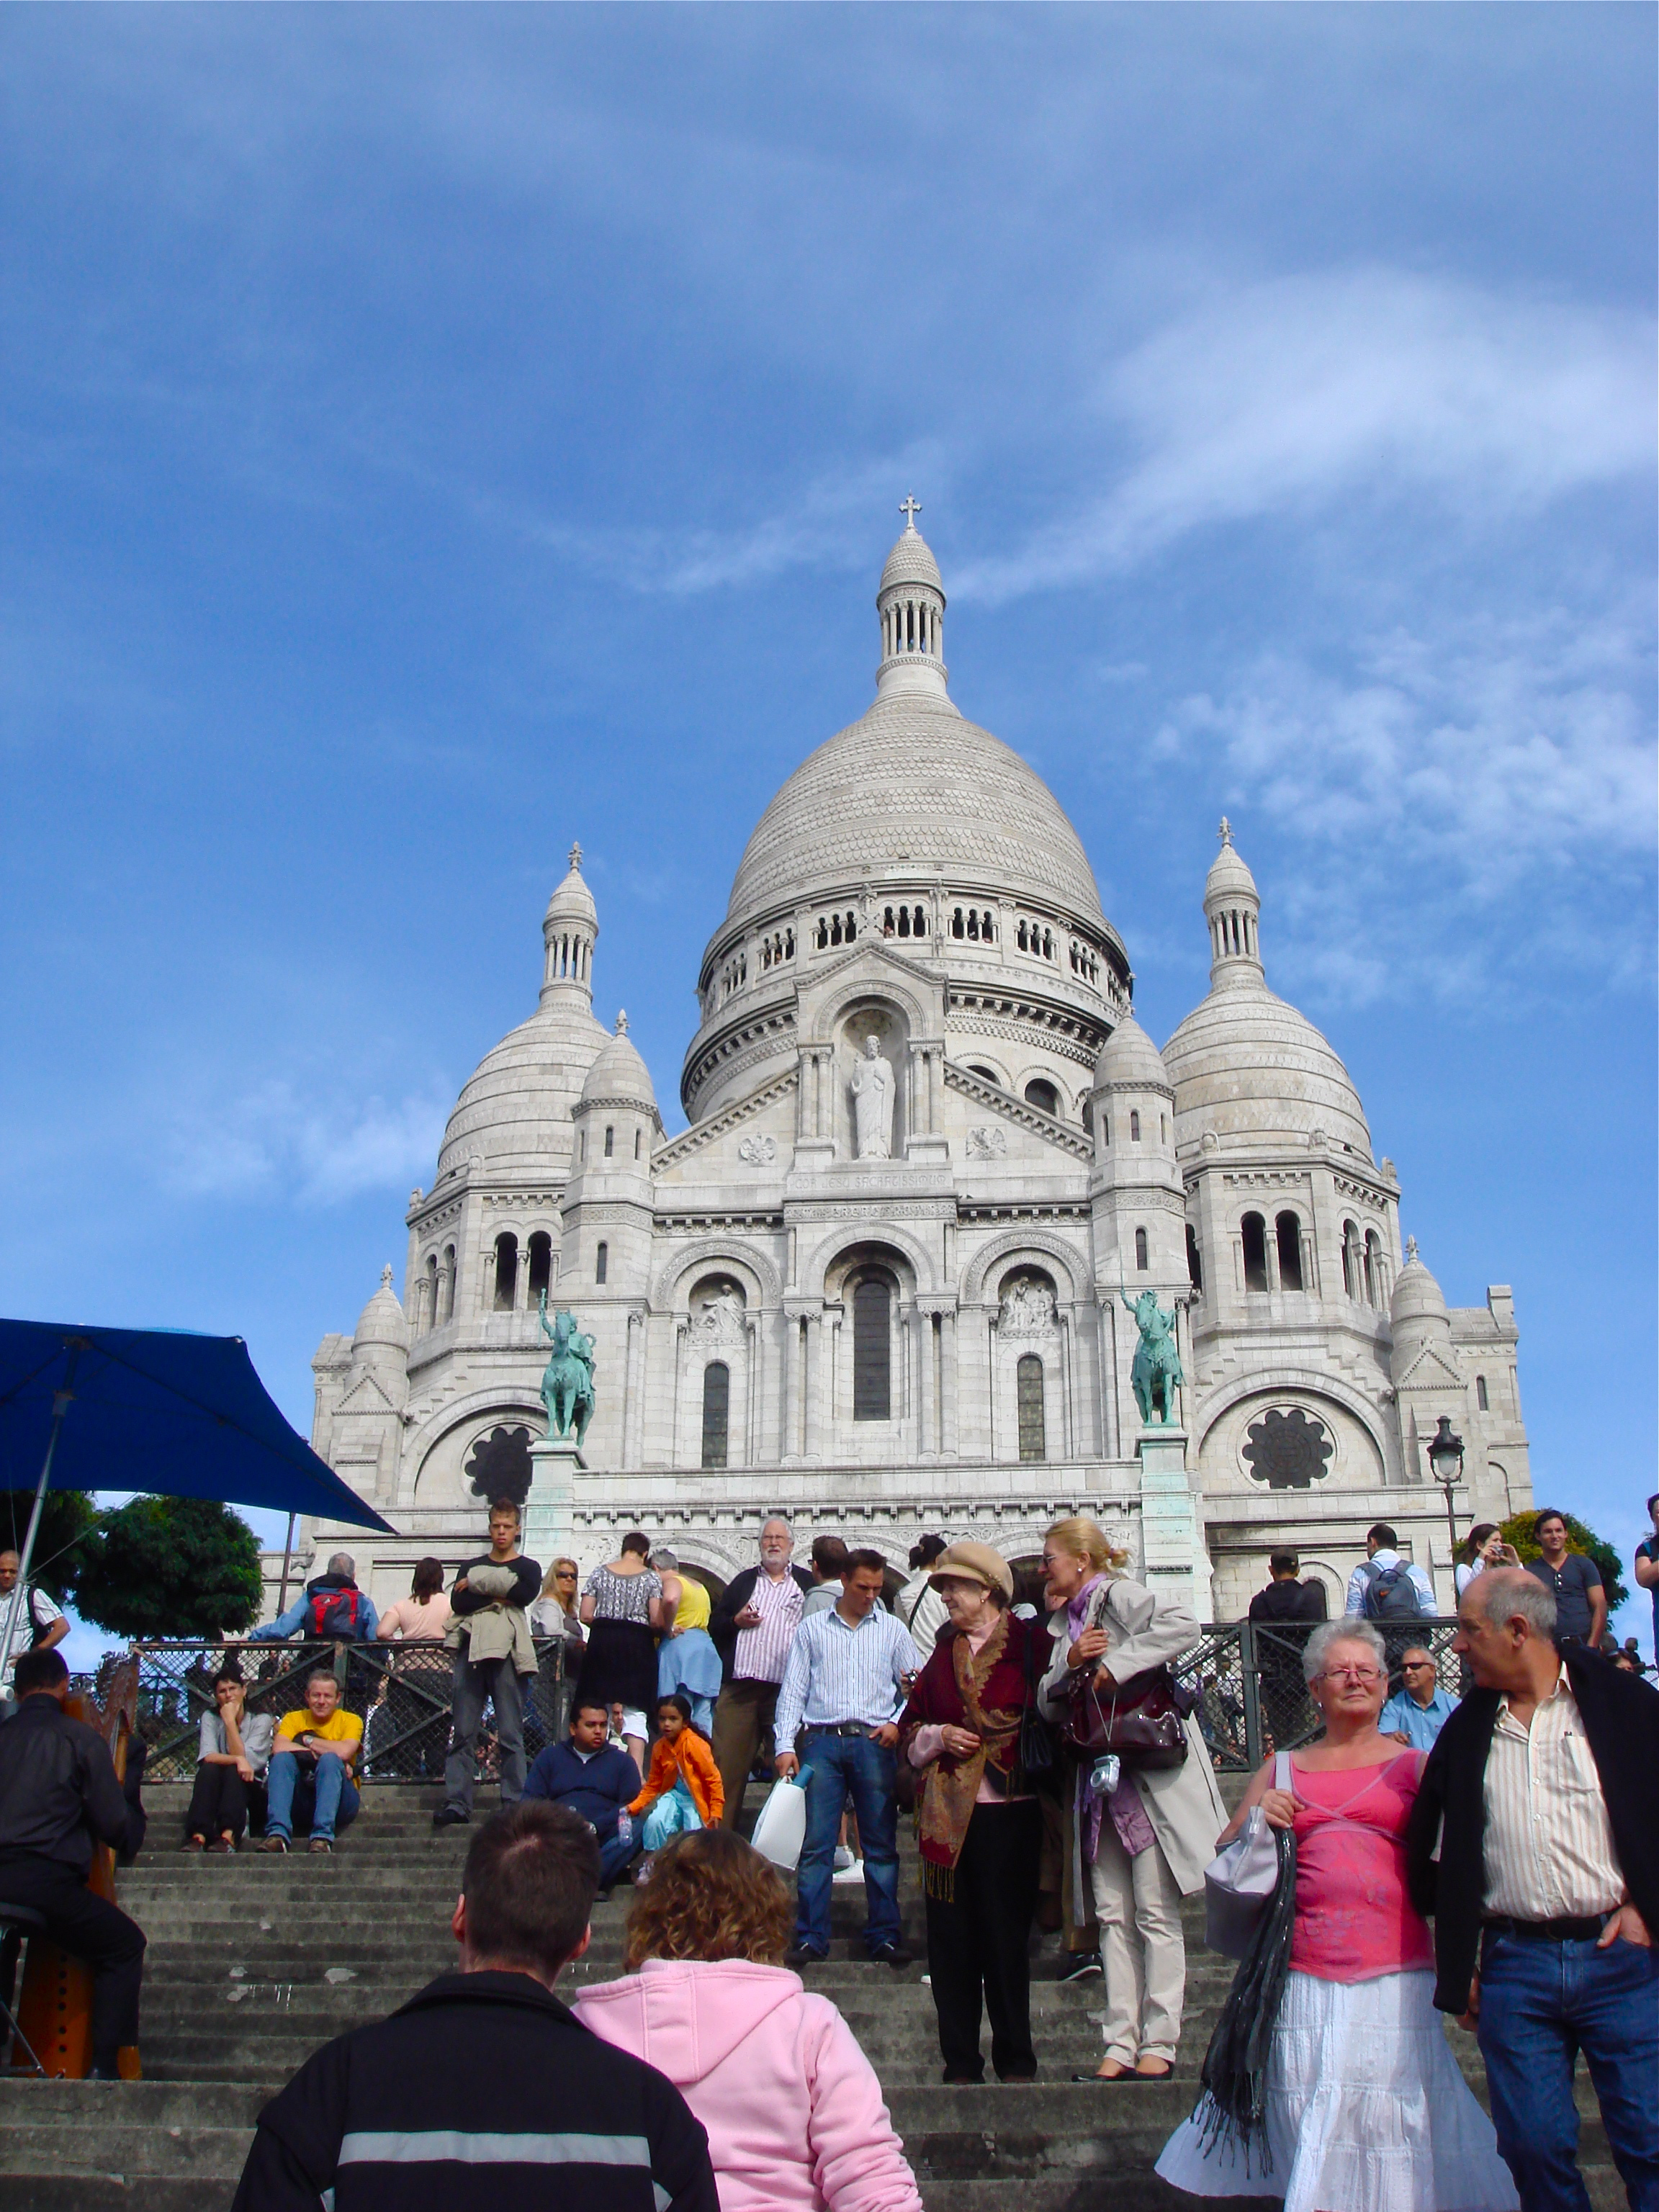 The tourist filled Basilica of the Sacre Ceour in Paris, France